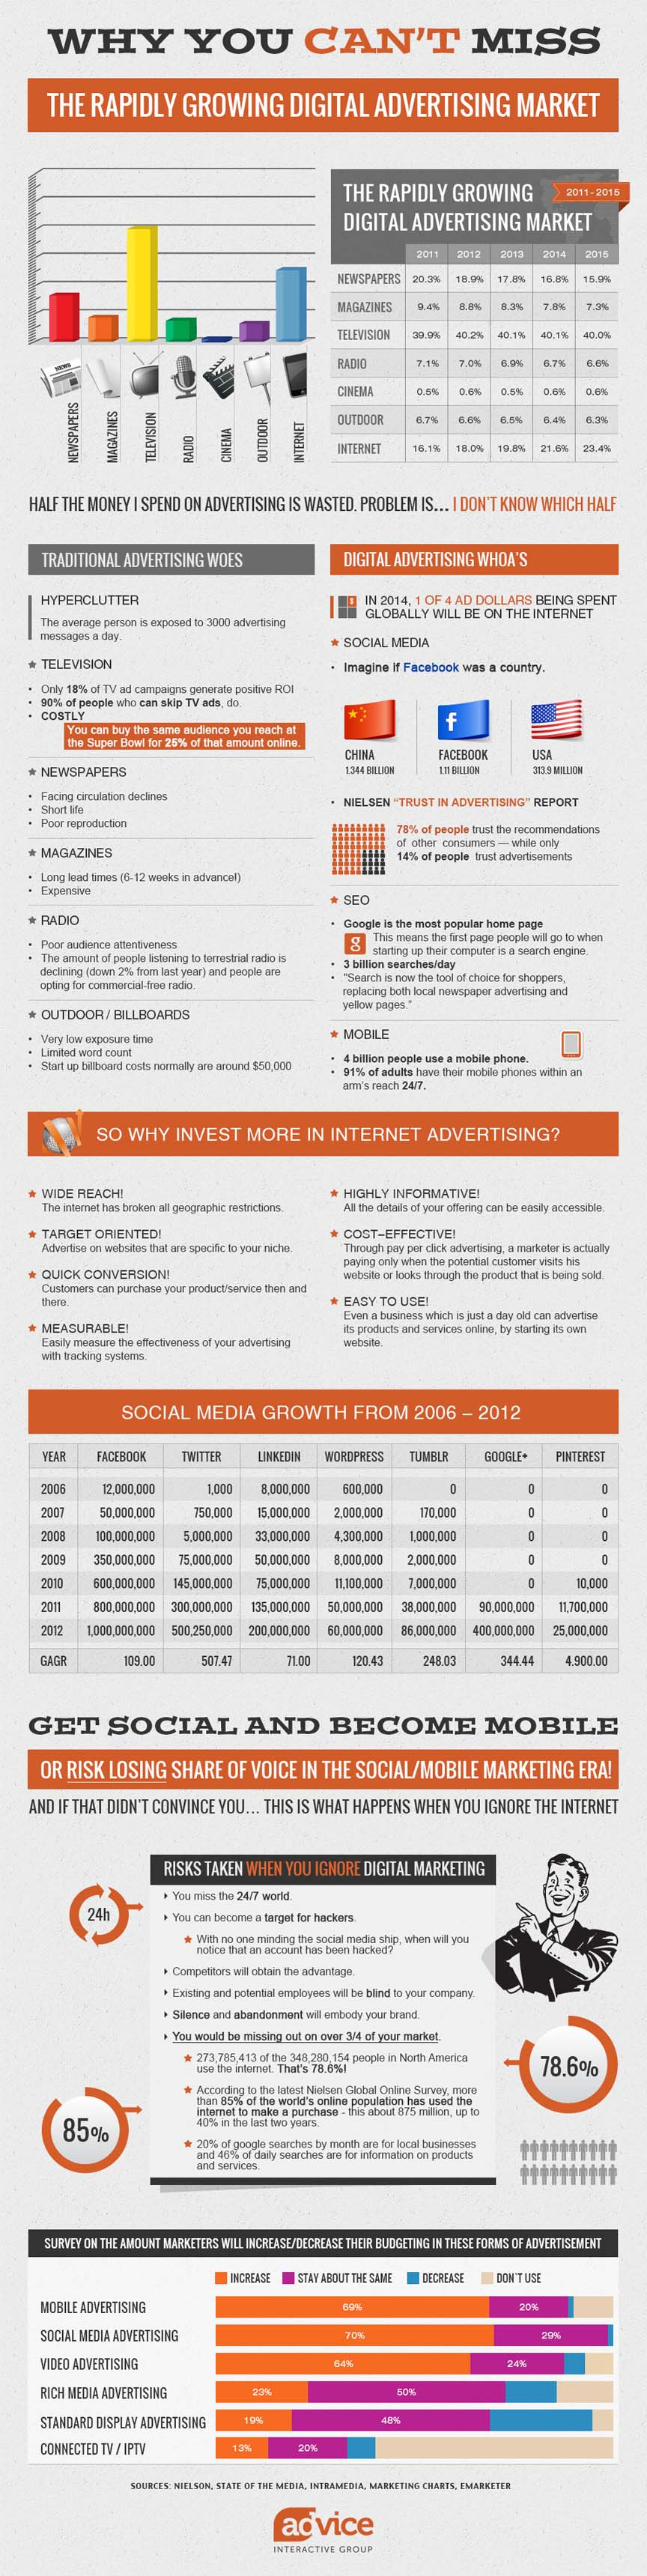 Social Media Advertising- Why should I care?